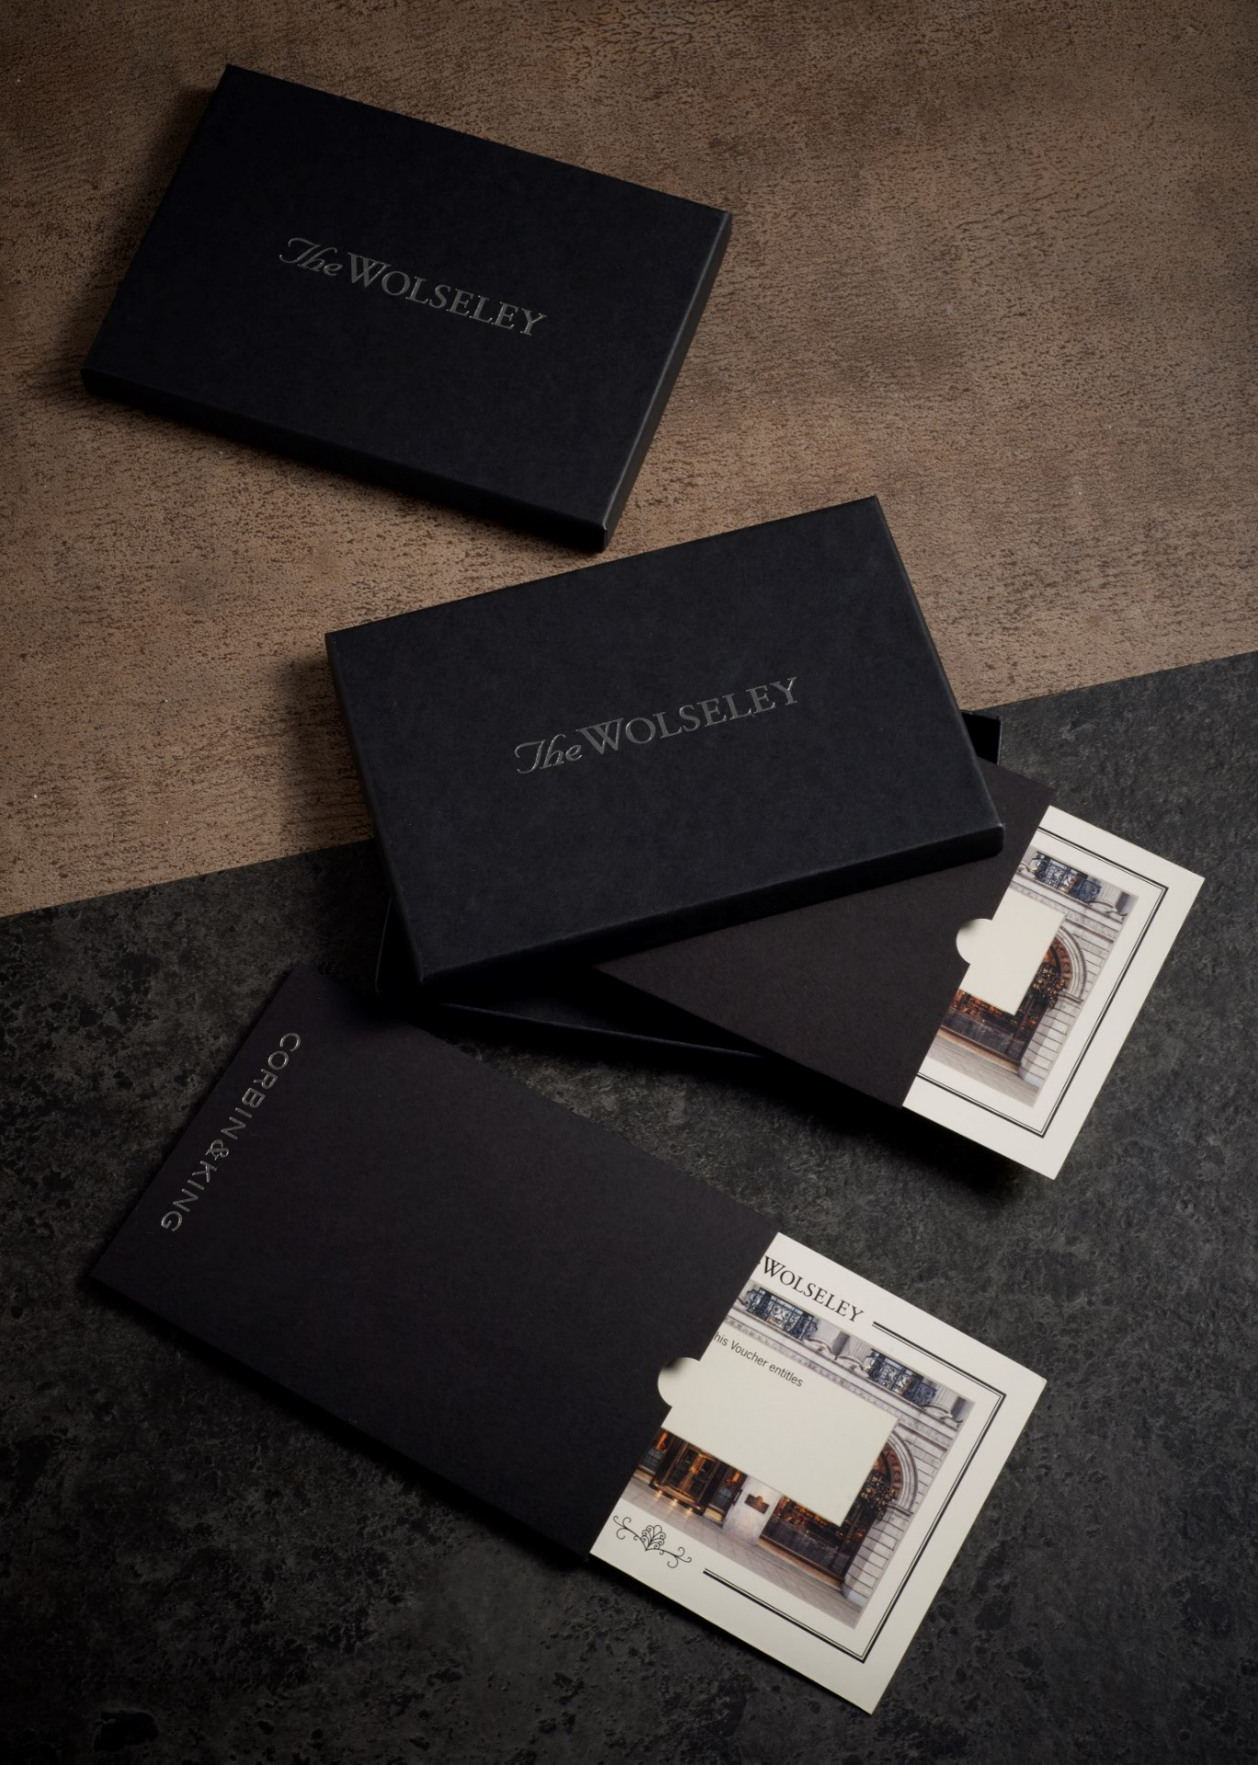 The box includes a thick card insert in the premium material ...